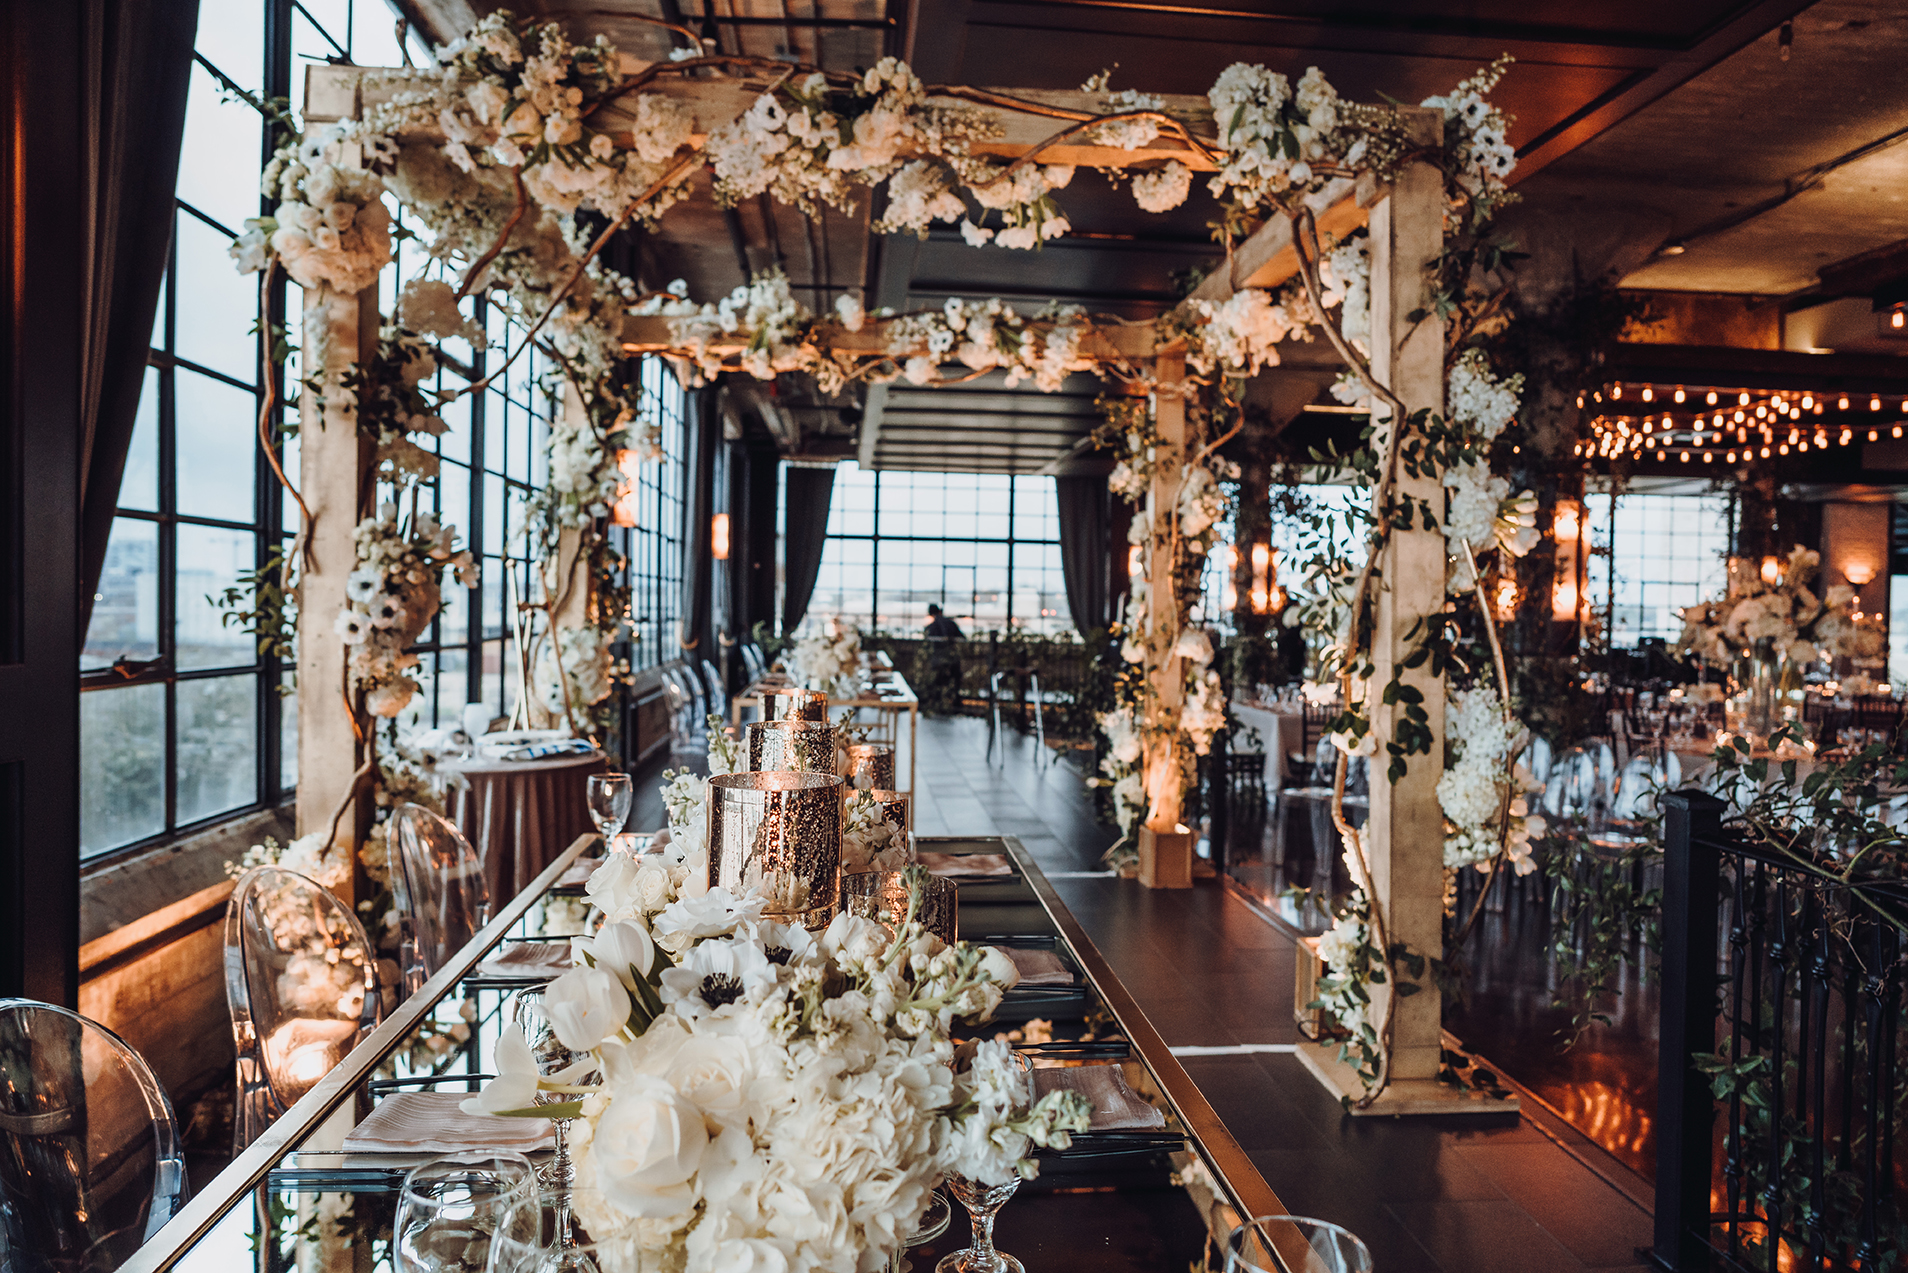 Houston Wedding, Reception Decor, Floral Canopy, White Florals